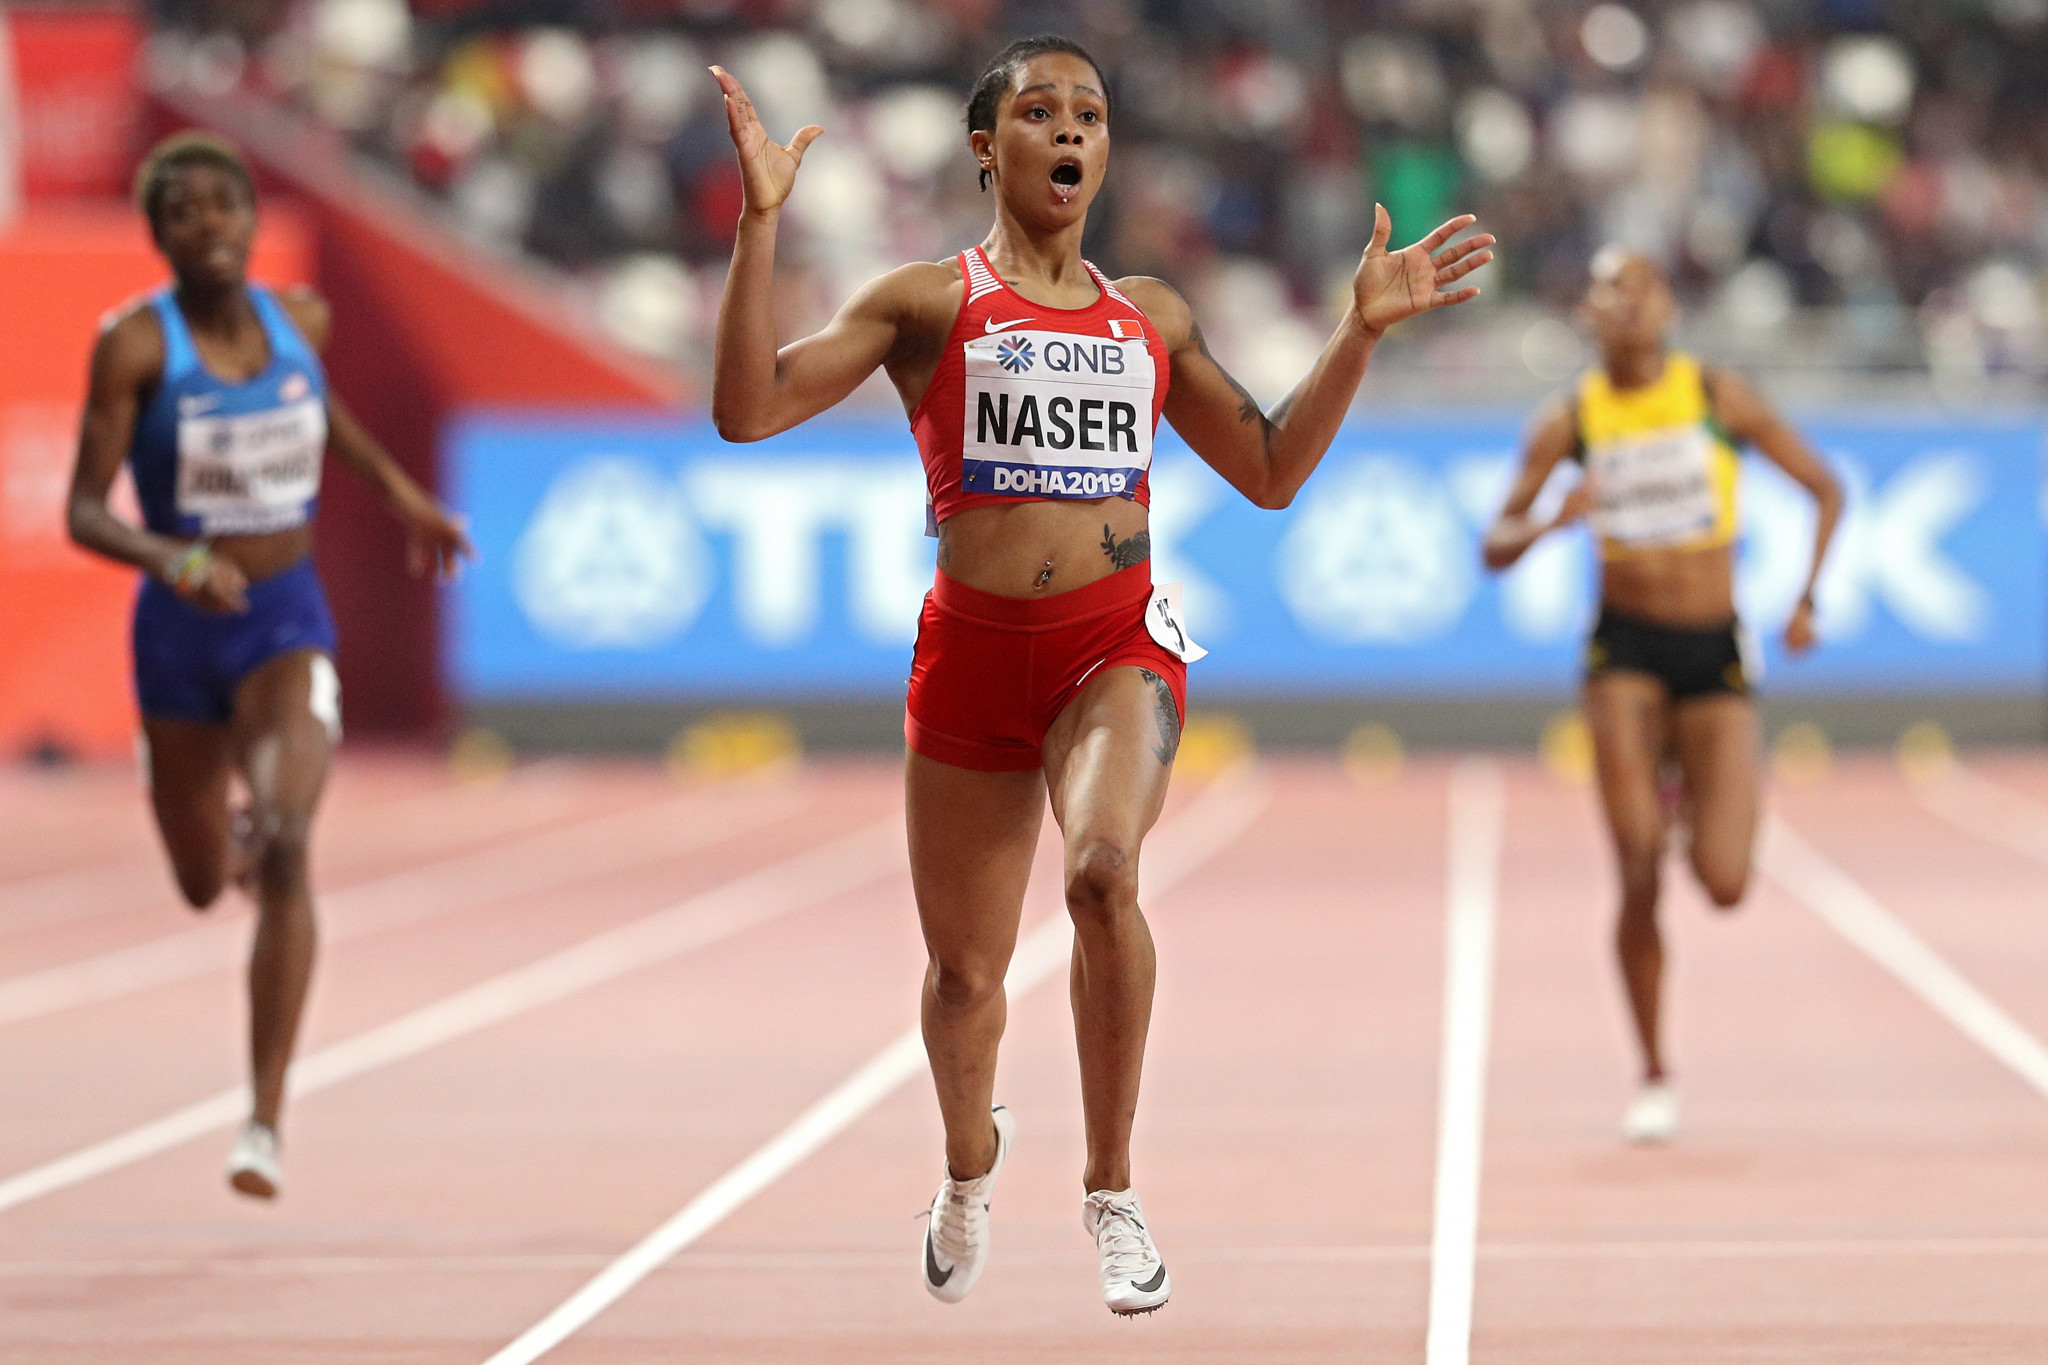 Salwa Eid Naser won the world 400m title in Doha last year ©Getty Images